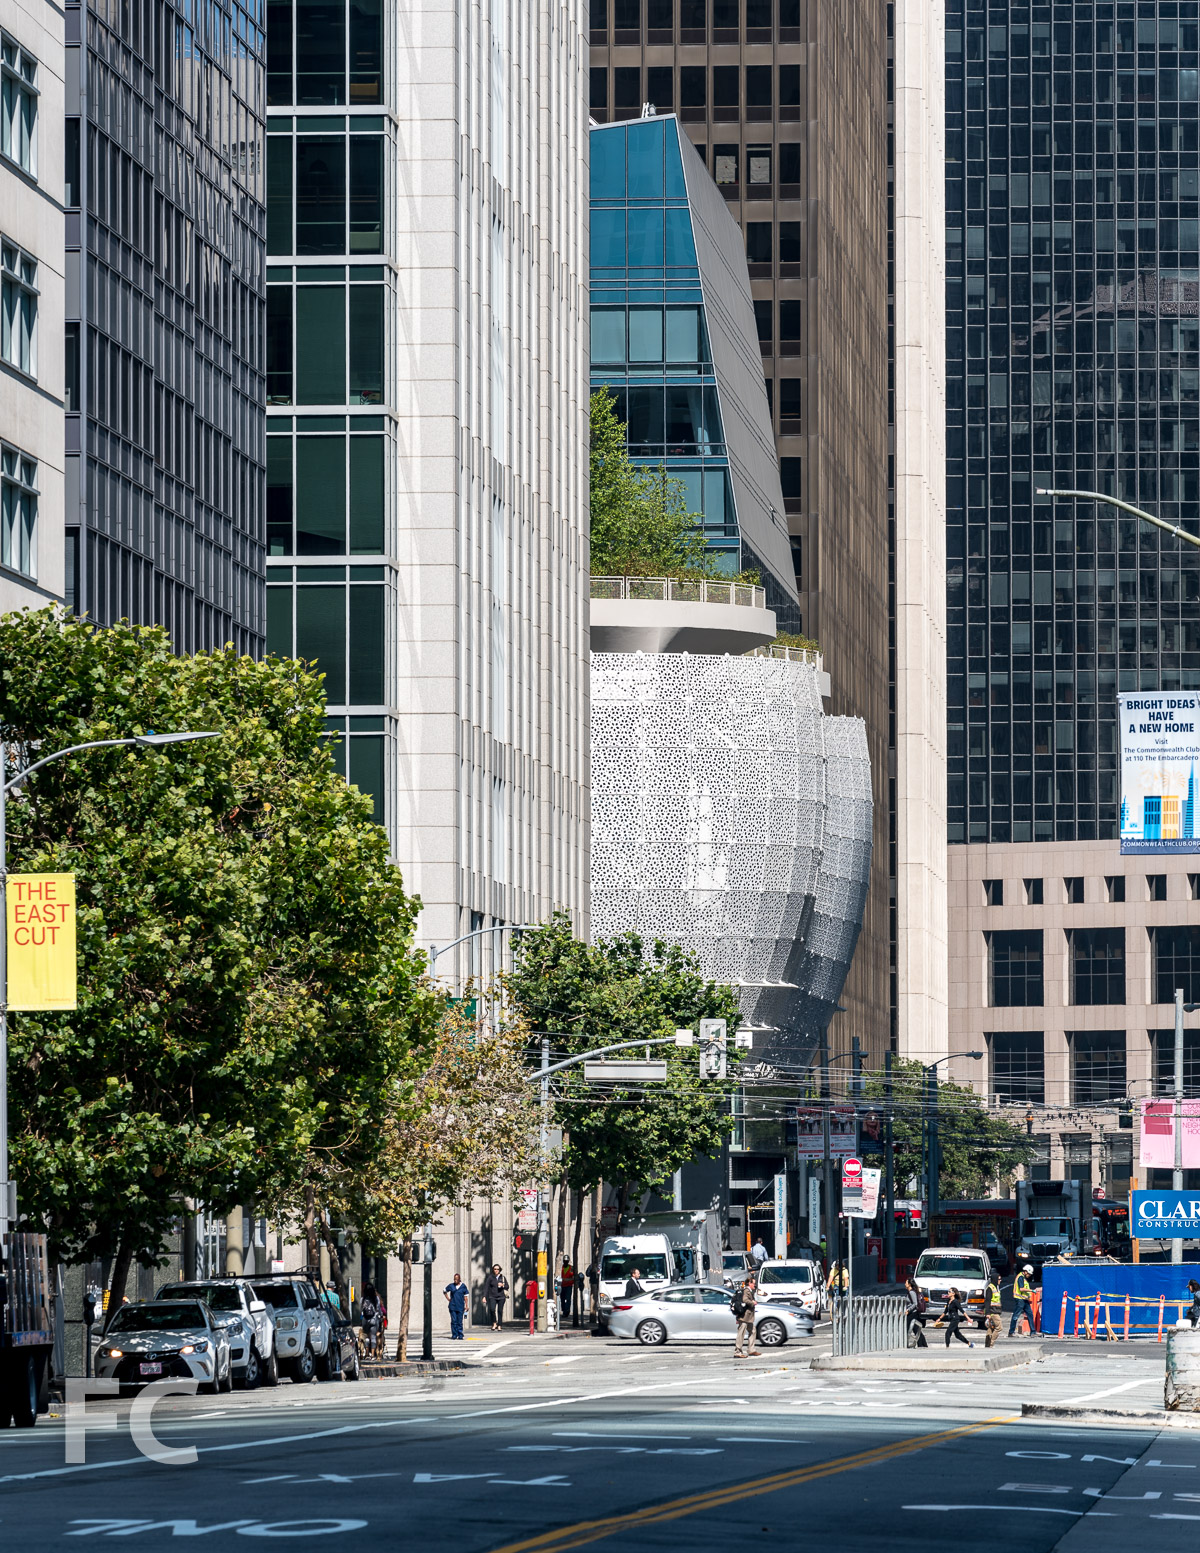 2018_08_16-Transbay Transit Center-DSC01164.jpg